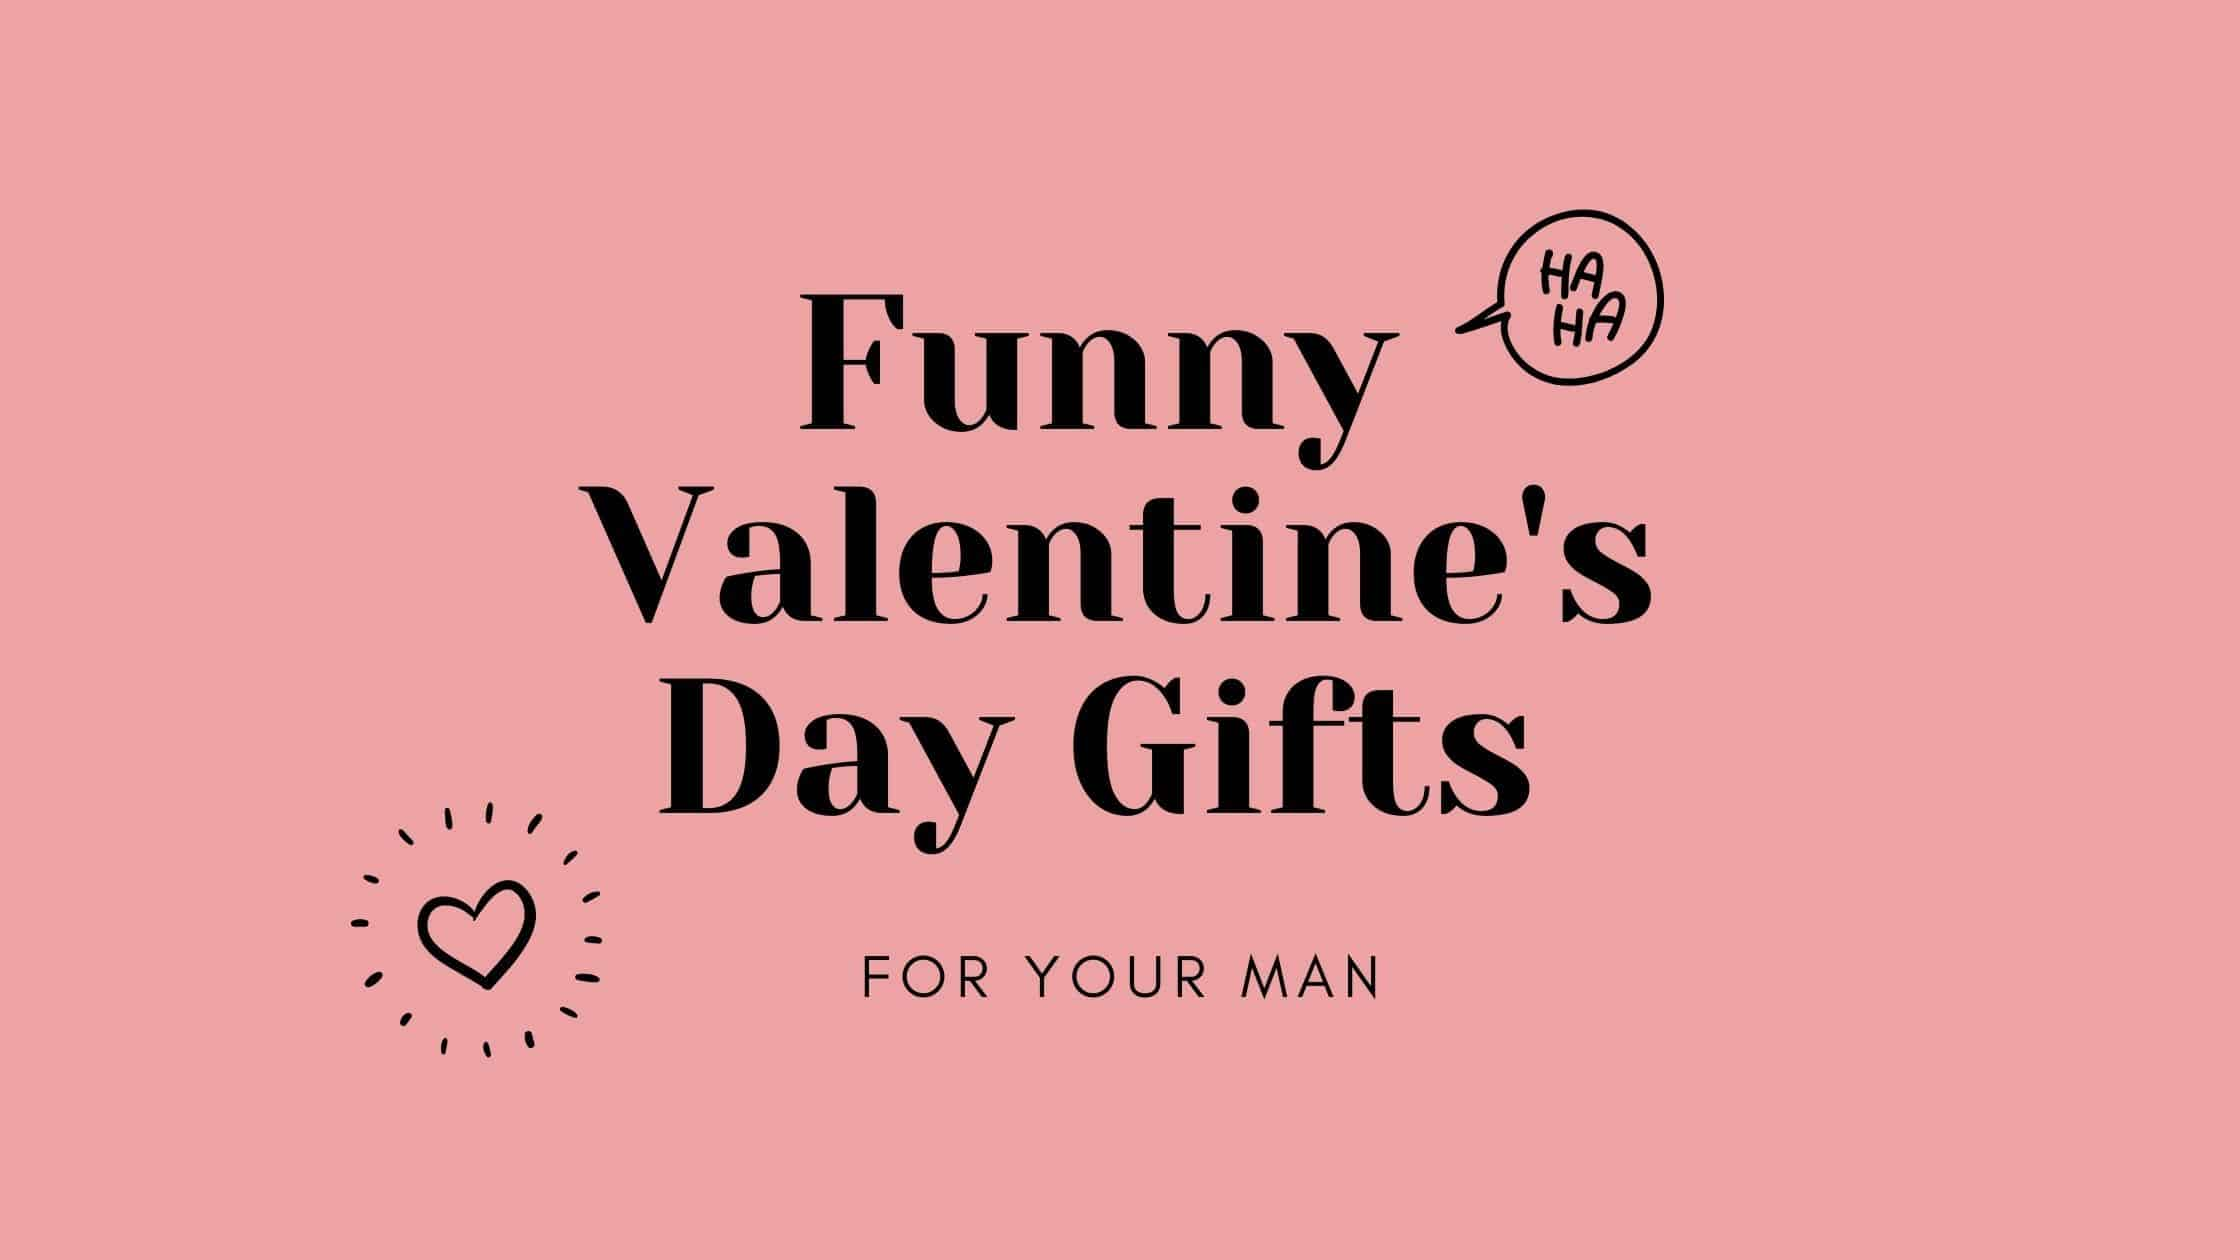 20+ Funny Valentine's Day Gifts for Him in 2021